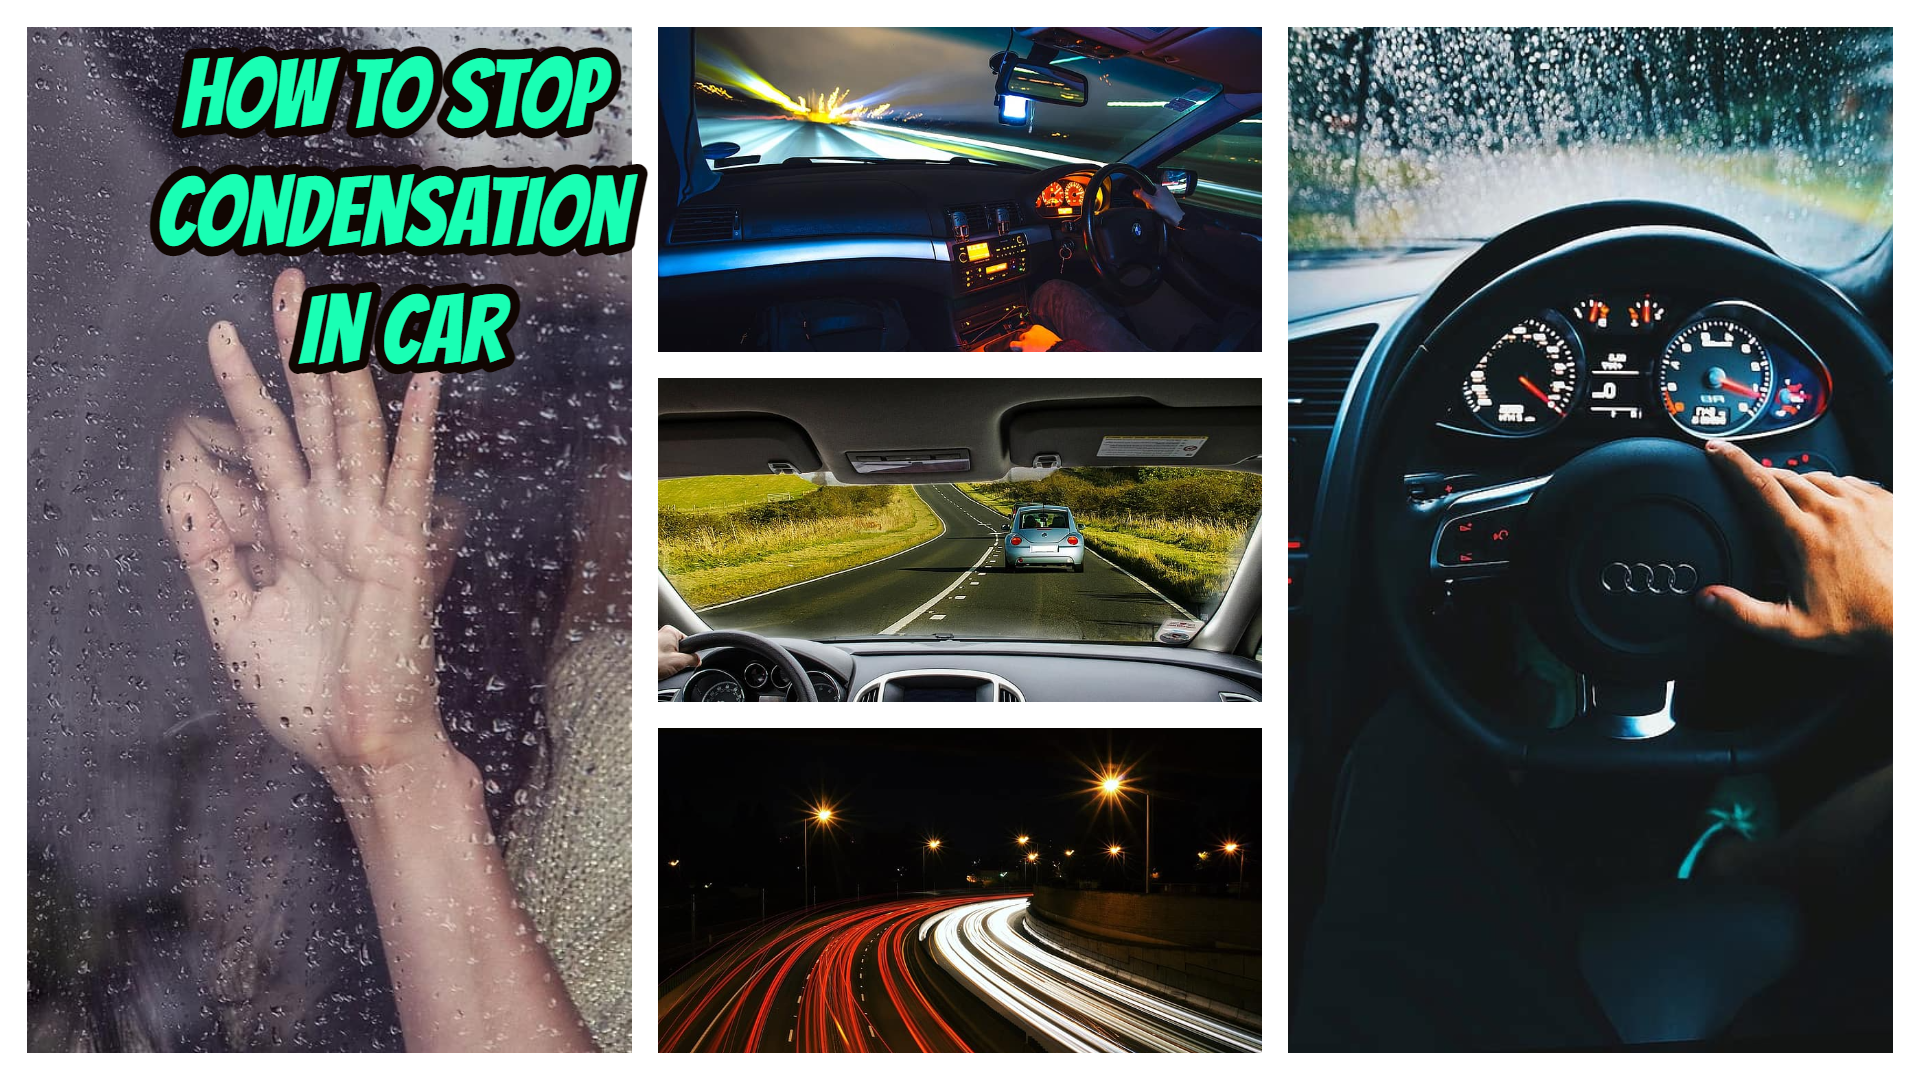 How to Stop Condensation in Car